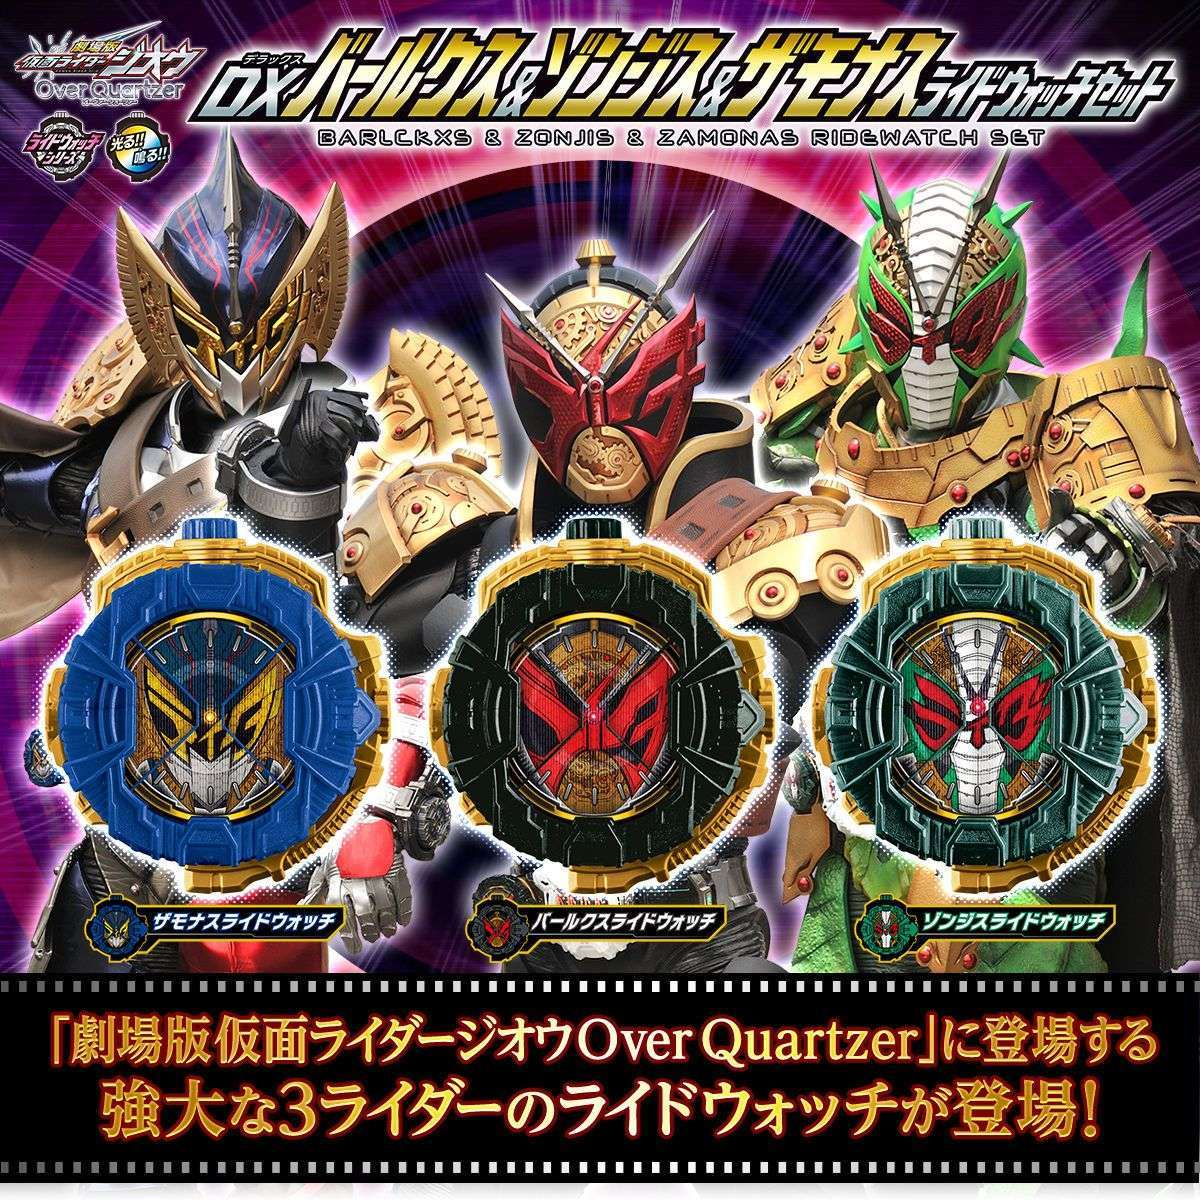 [CLOSED Dec  2019] Premium Bandai Exclusive - Kamen Rider Zi-O DX Barlckxs  & Zonjis & Zamonas Ride Watch Set (Jul  28th - Aug  11th)